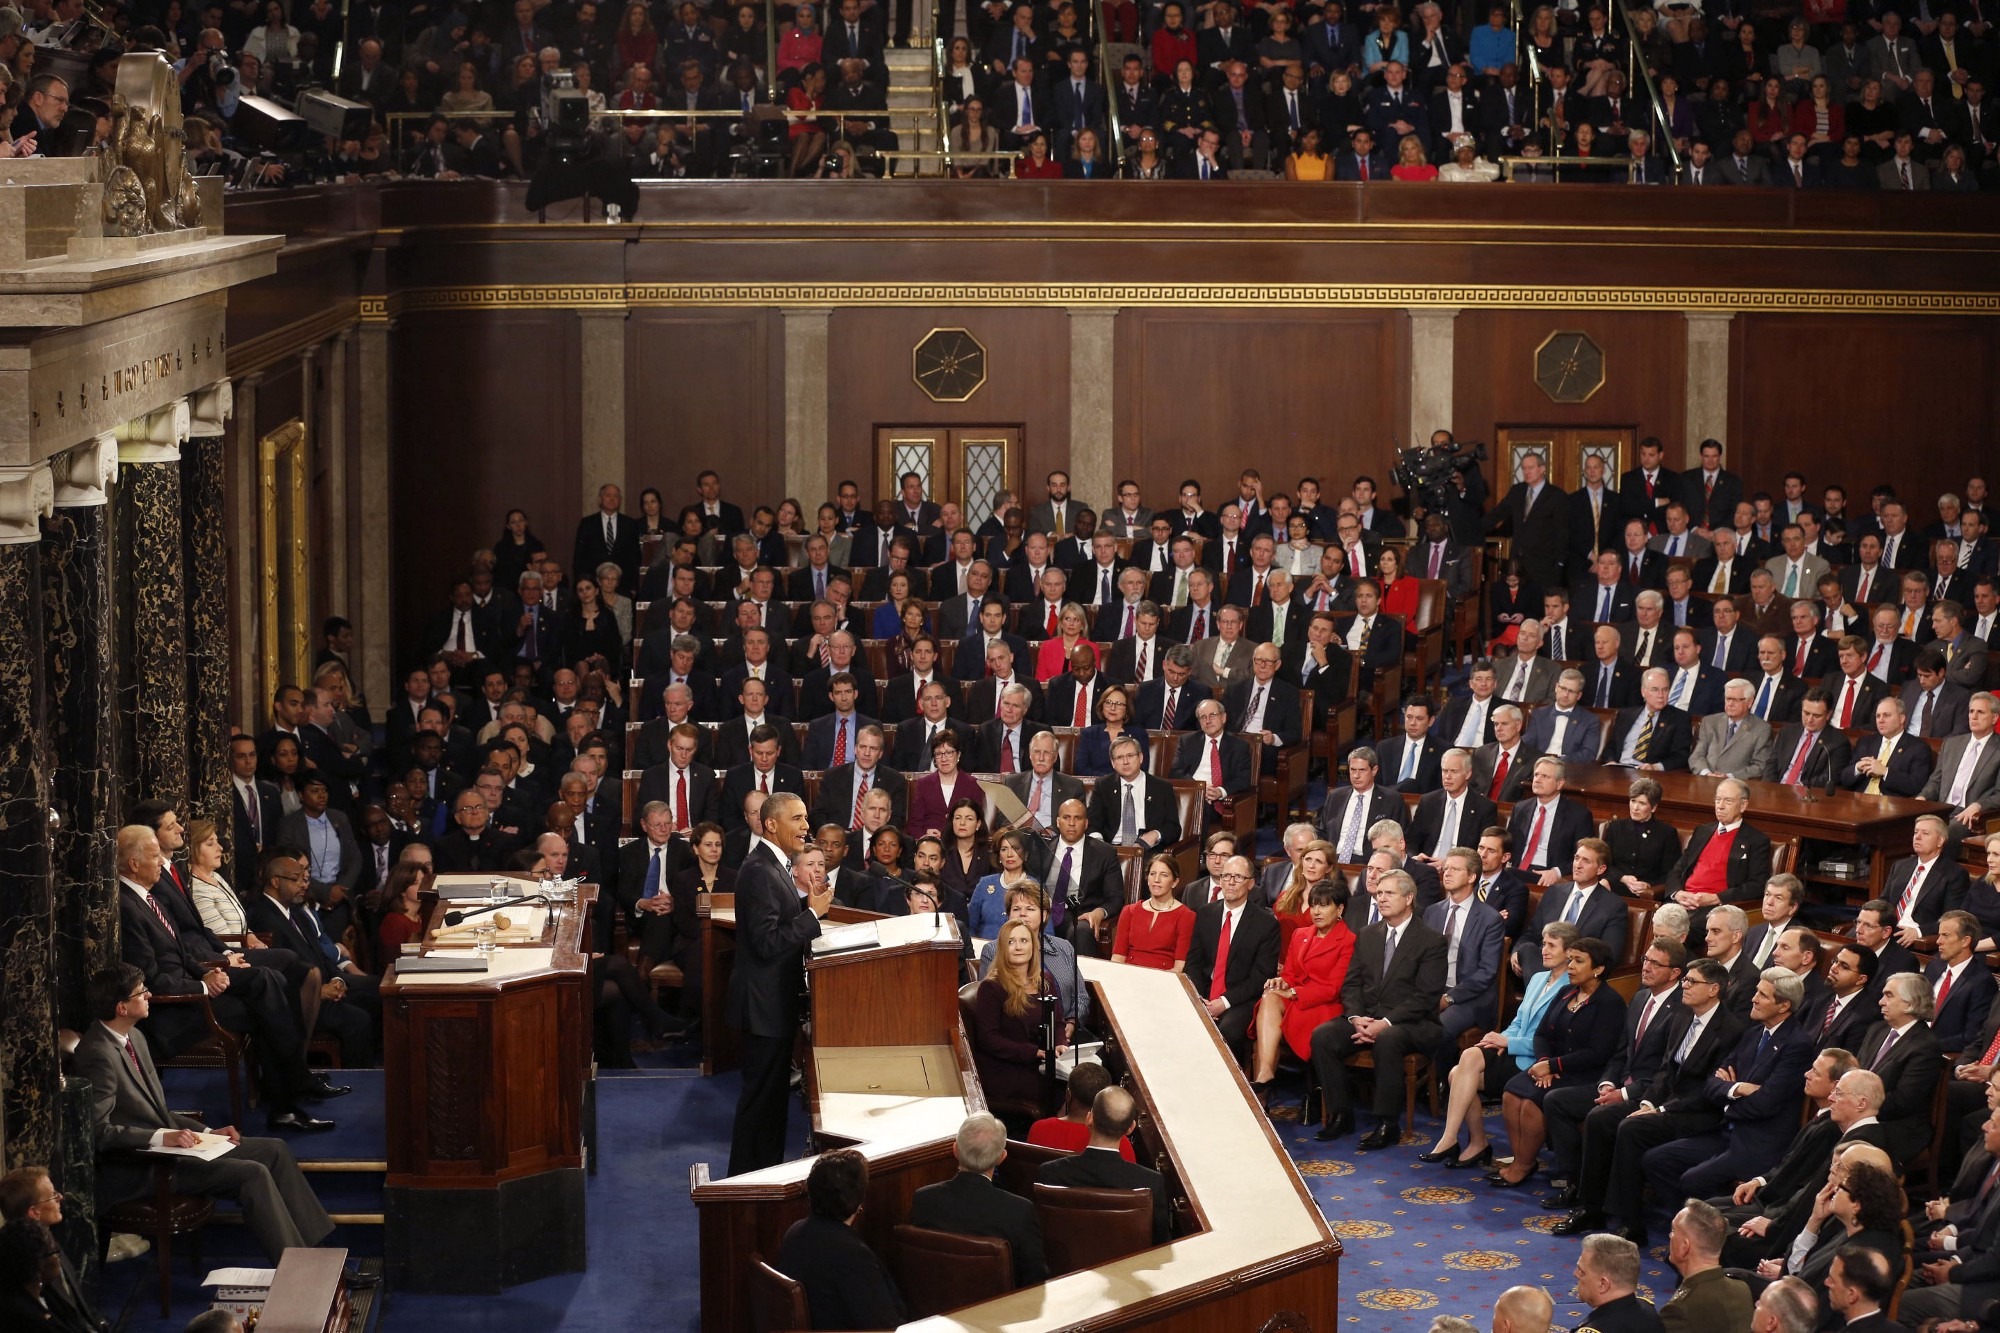 President Obama delivering the State of the Union